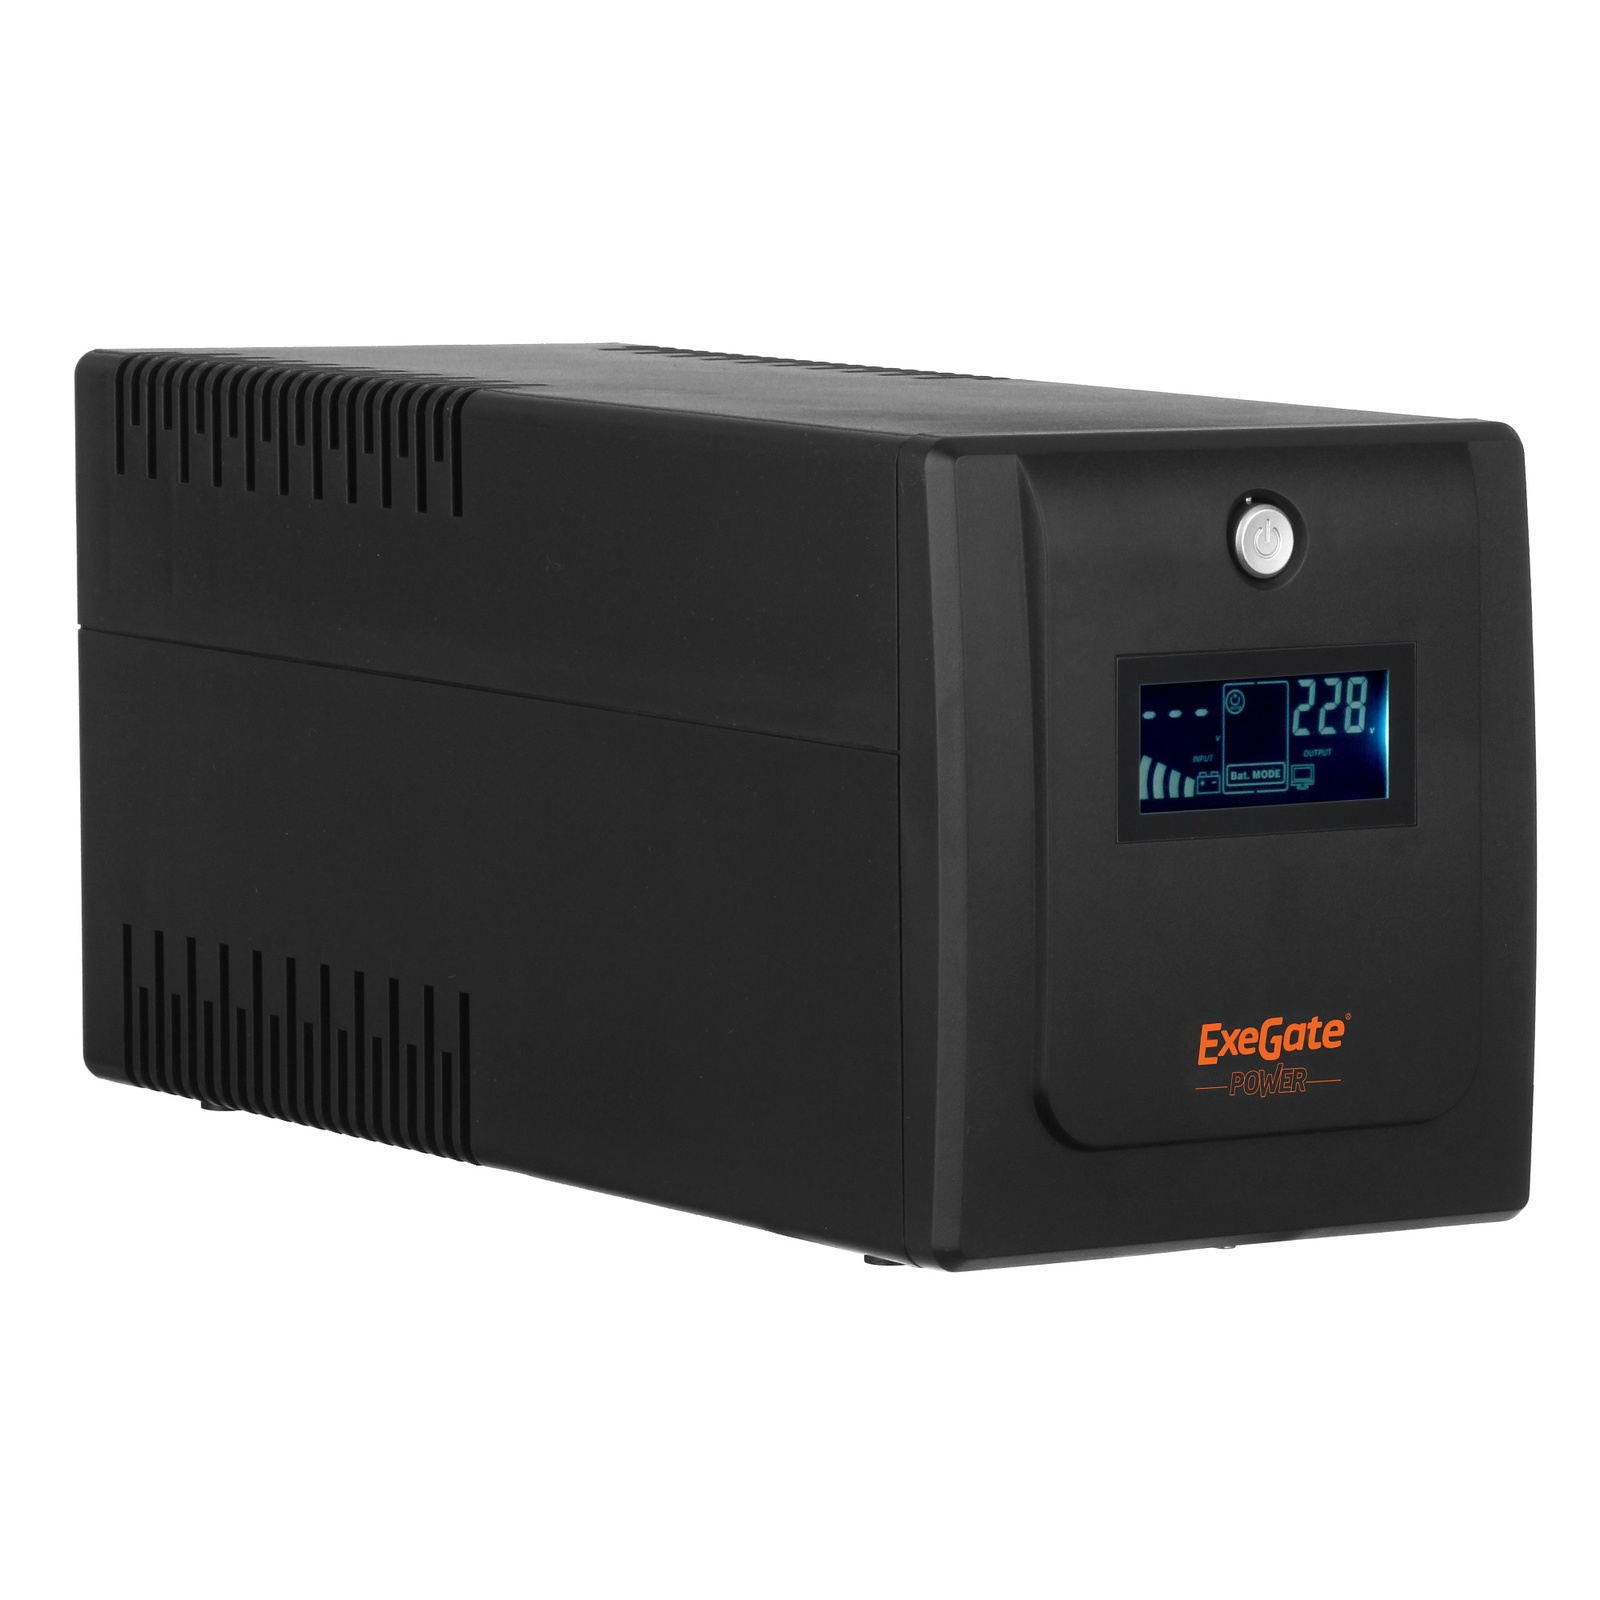 ИБП Exegate Power Smart ULB-1500 LCD <1500VA, Black, 4 евророзетки, USB>